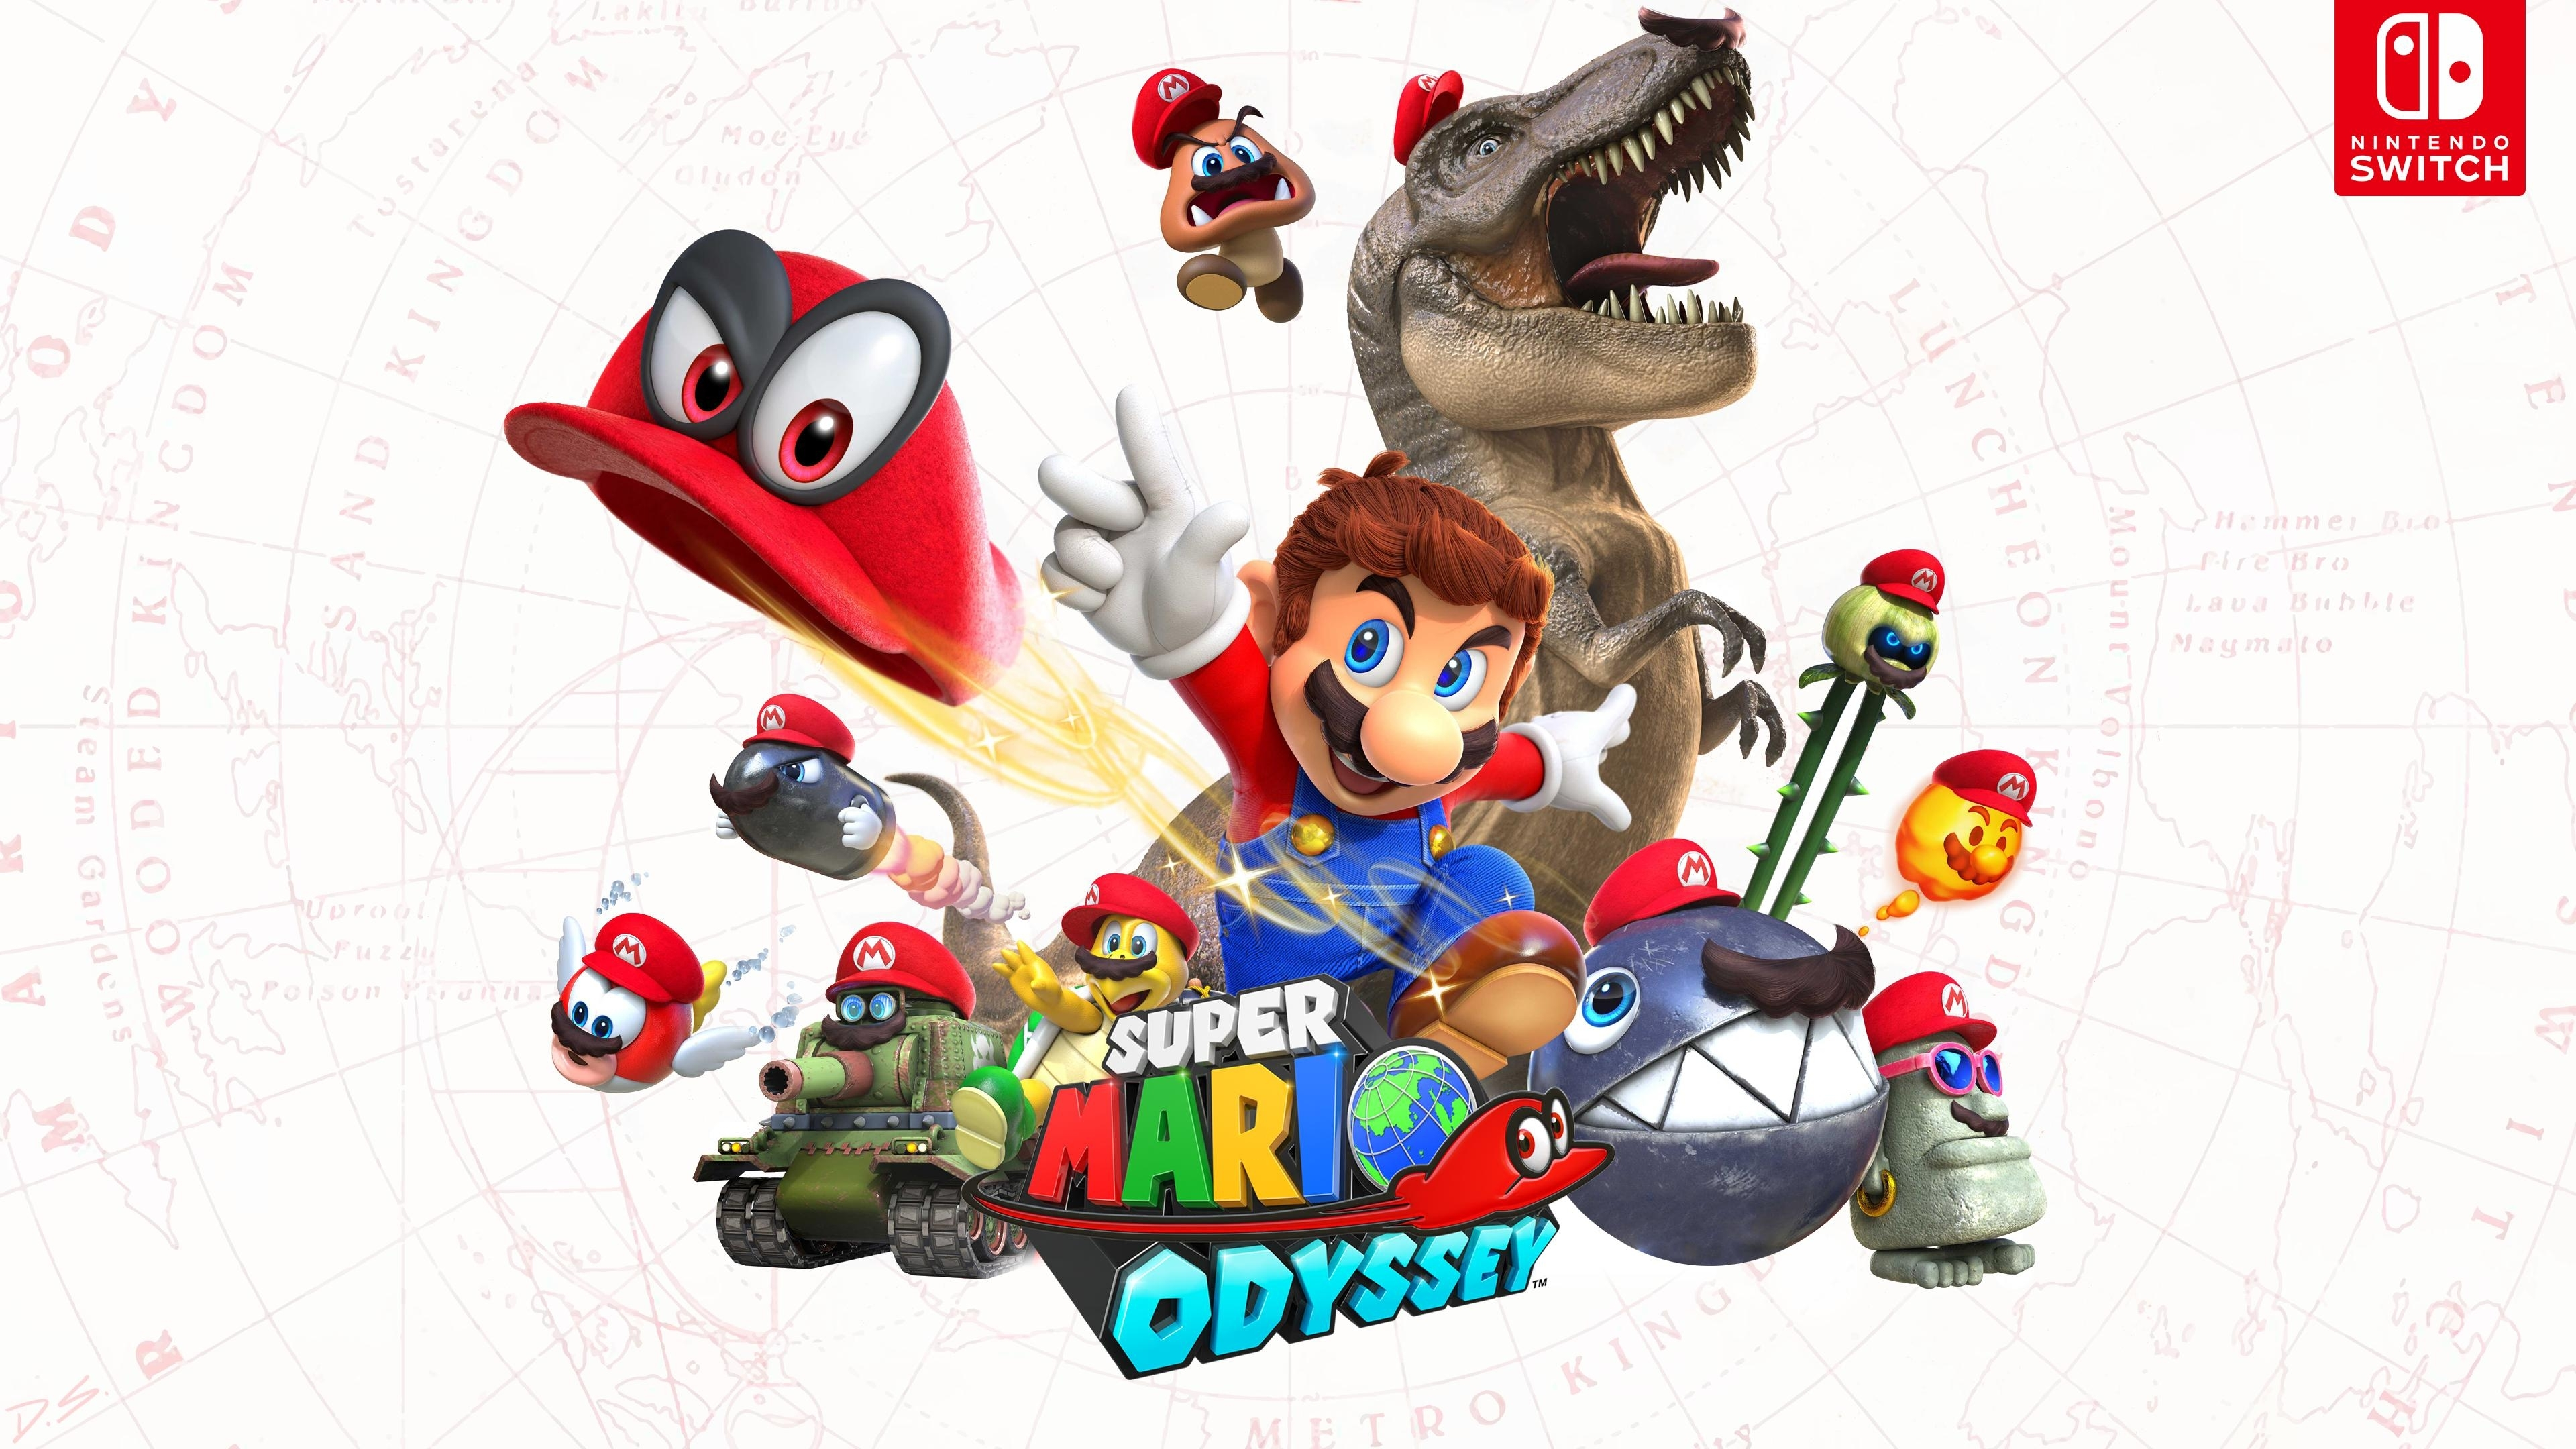 super mario odyssey wallpapers - wallpaper cave